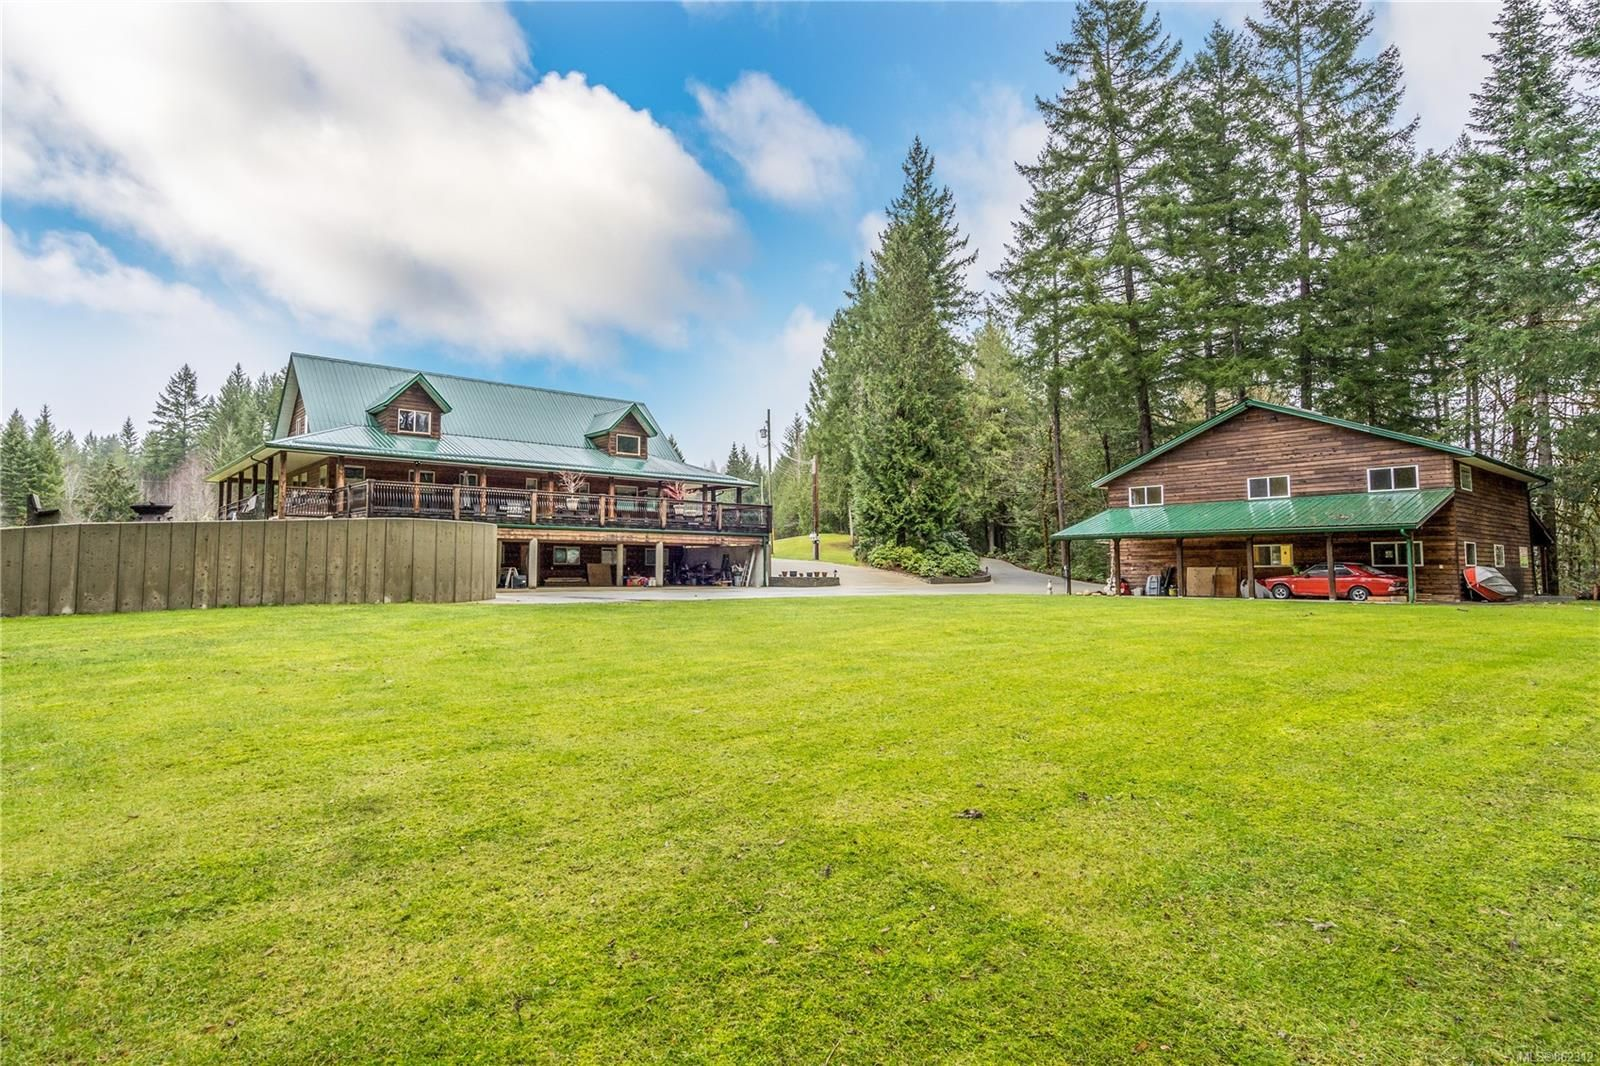 Photo 50: Photos: 7380 Plymouth Rd in : PA Alberni Valley House for sale (Port Alberni)  : MLS®# 862312